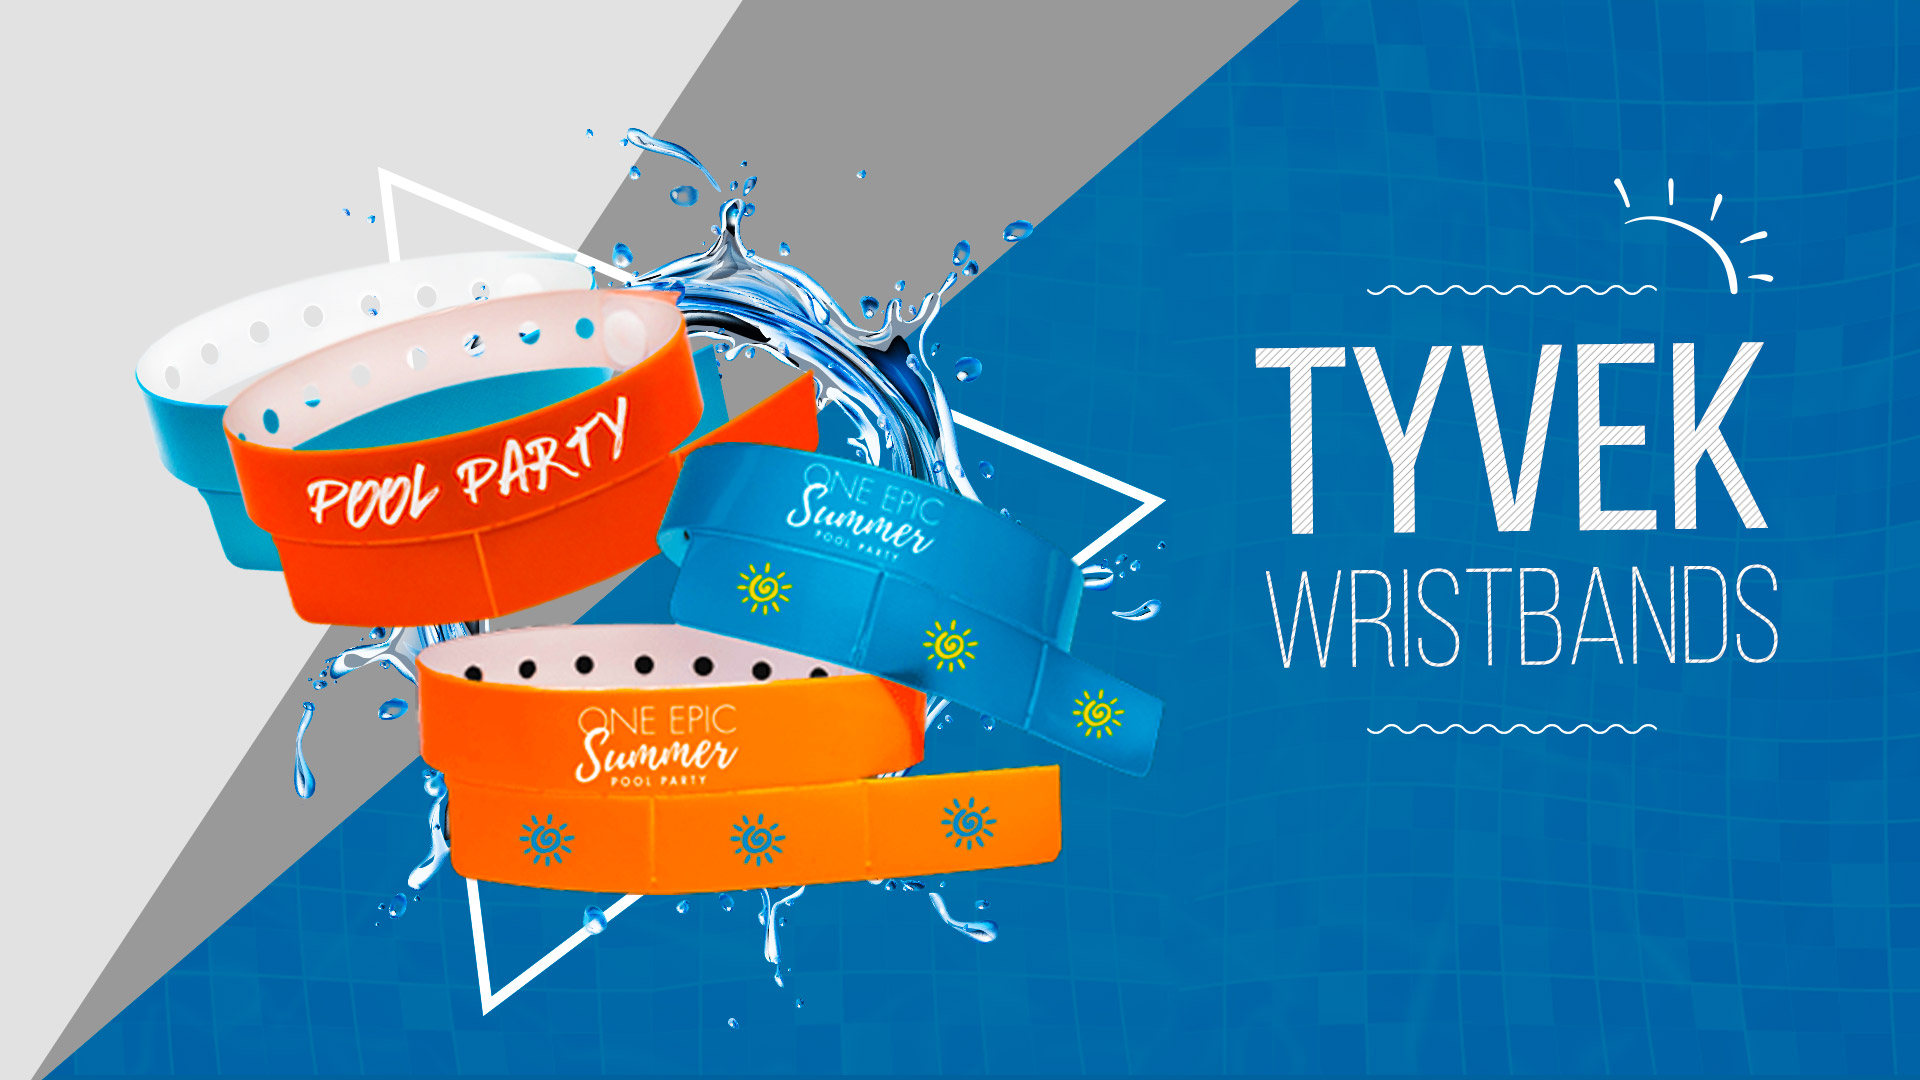 Pool_Party Tyvek Wristbands  -  24HourWristbands.com